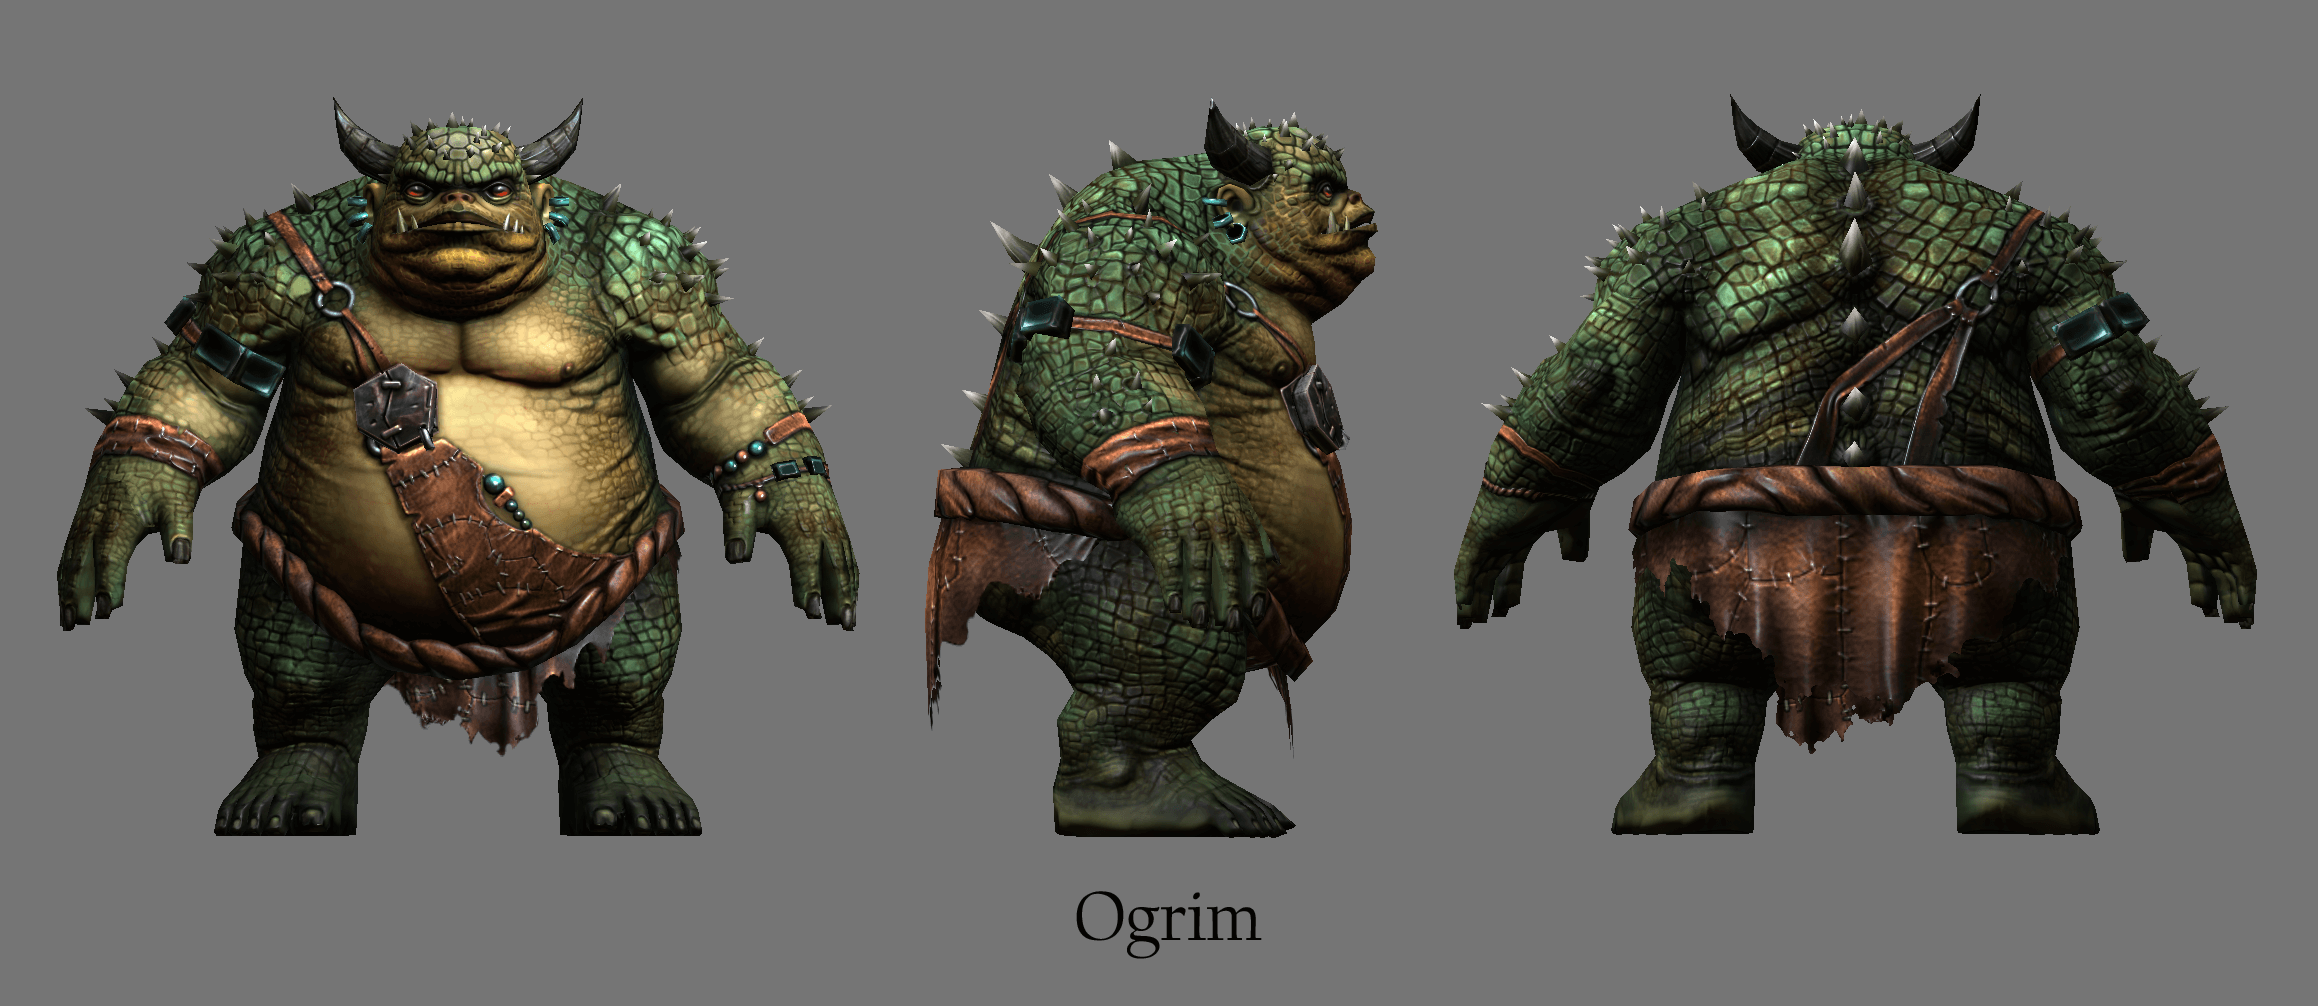 The Elder Scrolls Online Concept Art Ogrim Render